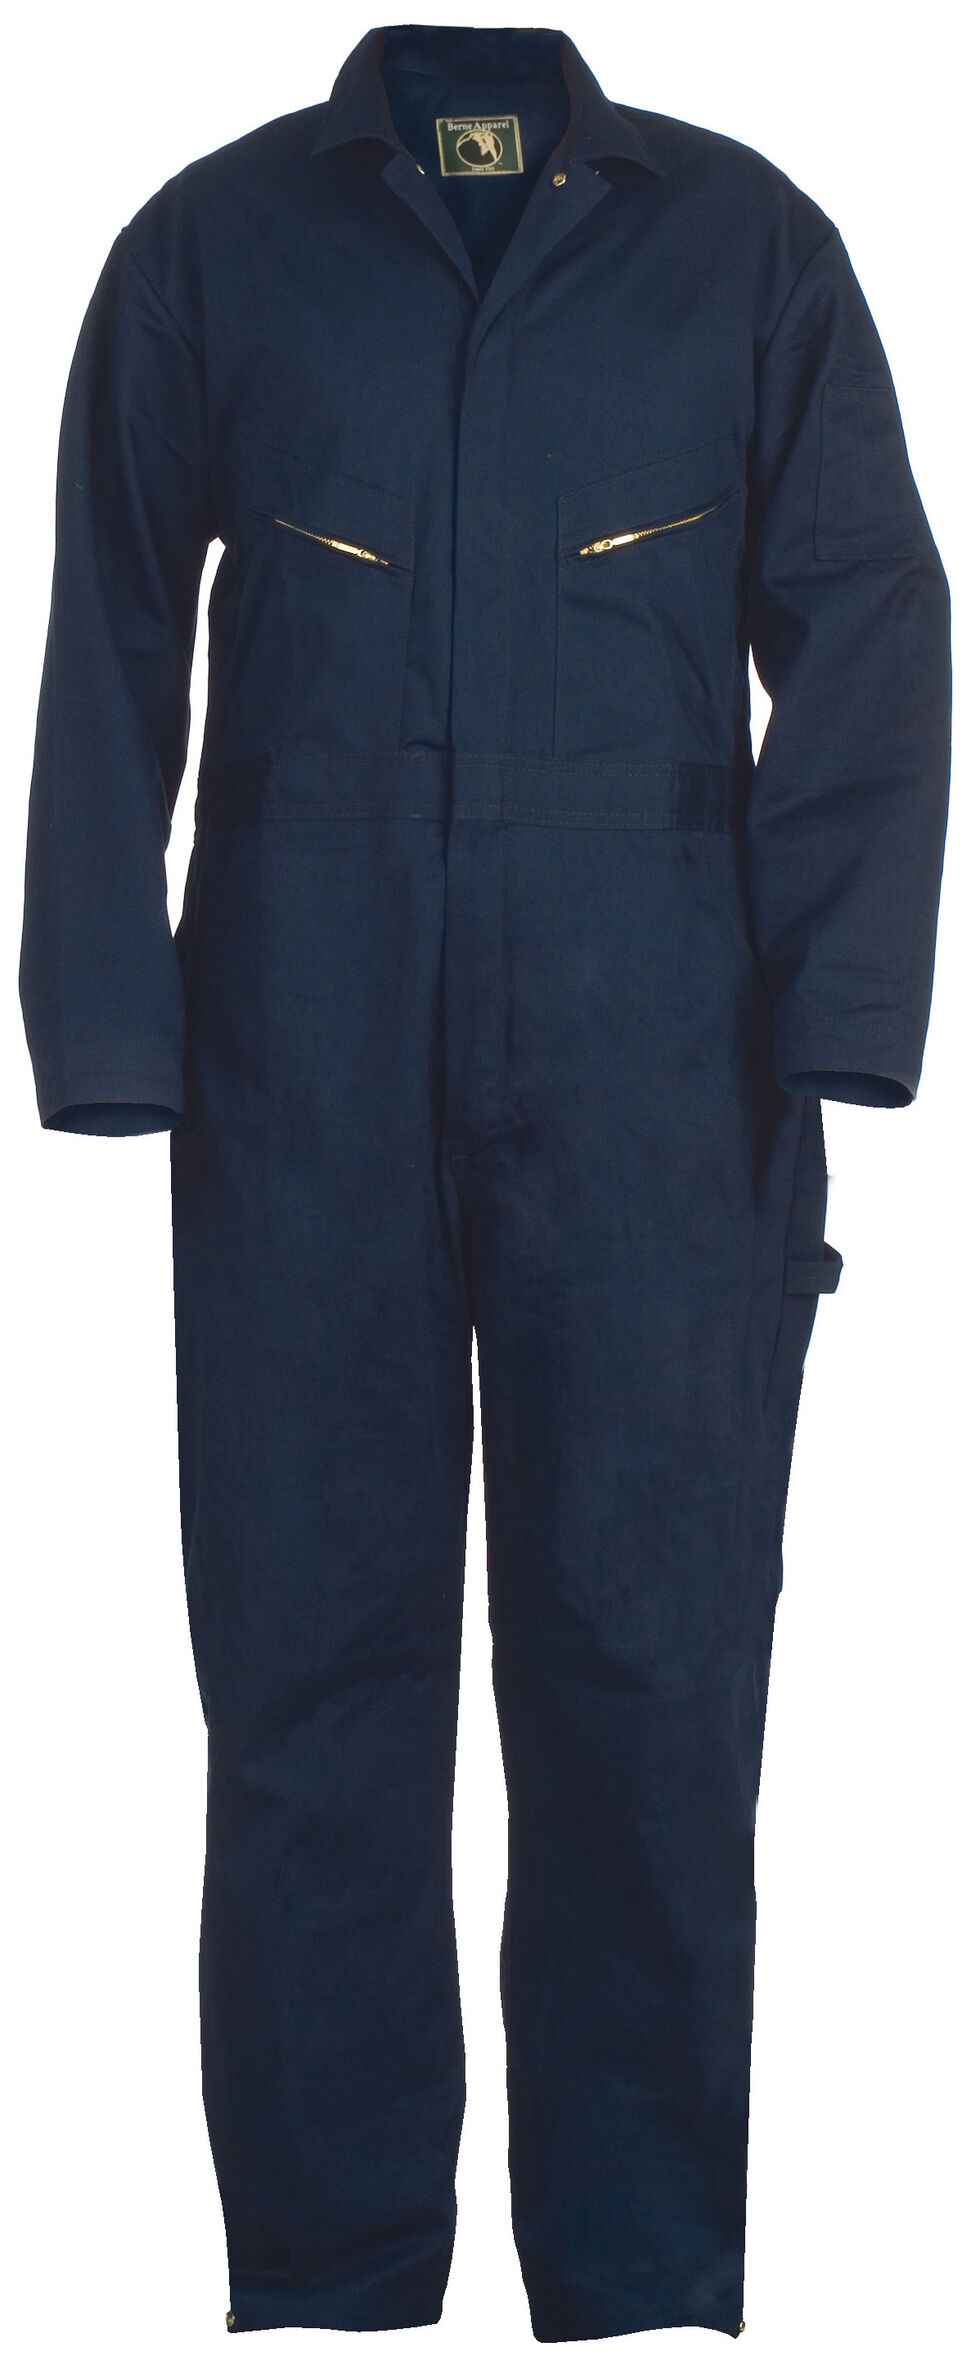 Berne Deluxe Unlined Coveralls - 56S, 58S, and 60S, Navy, hi-res